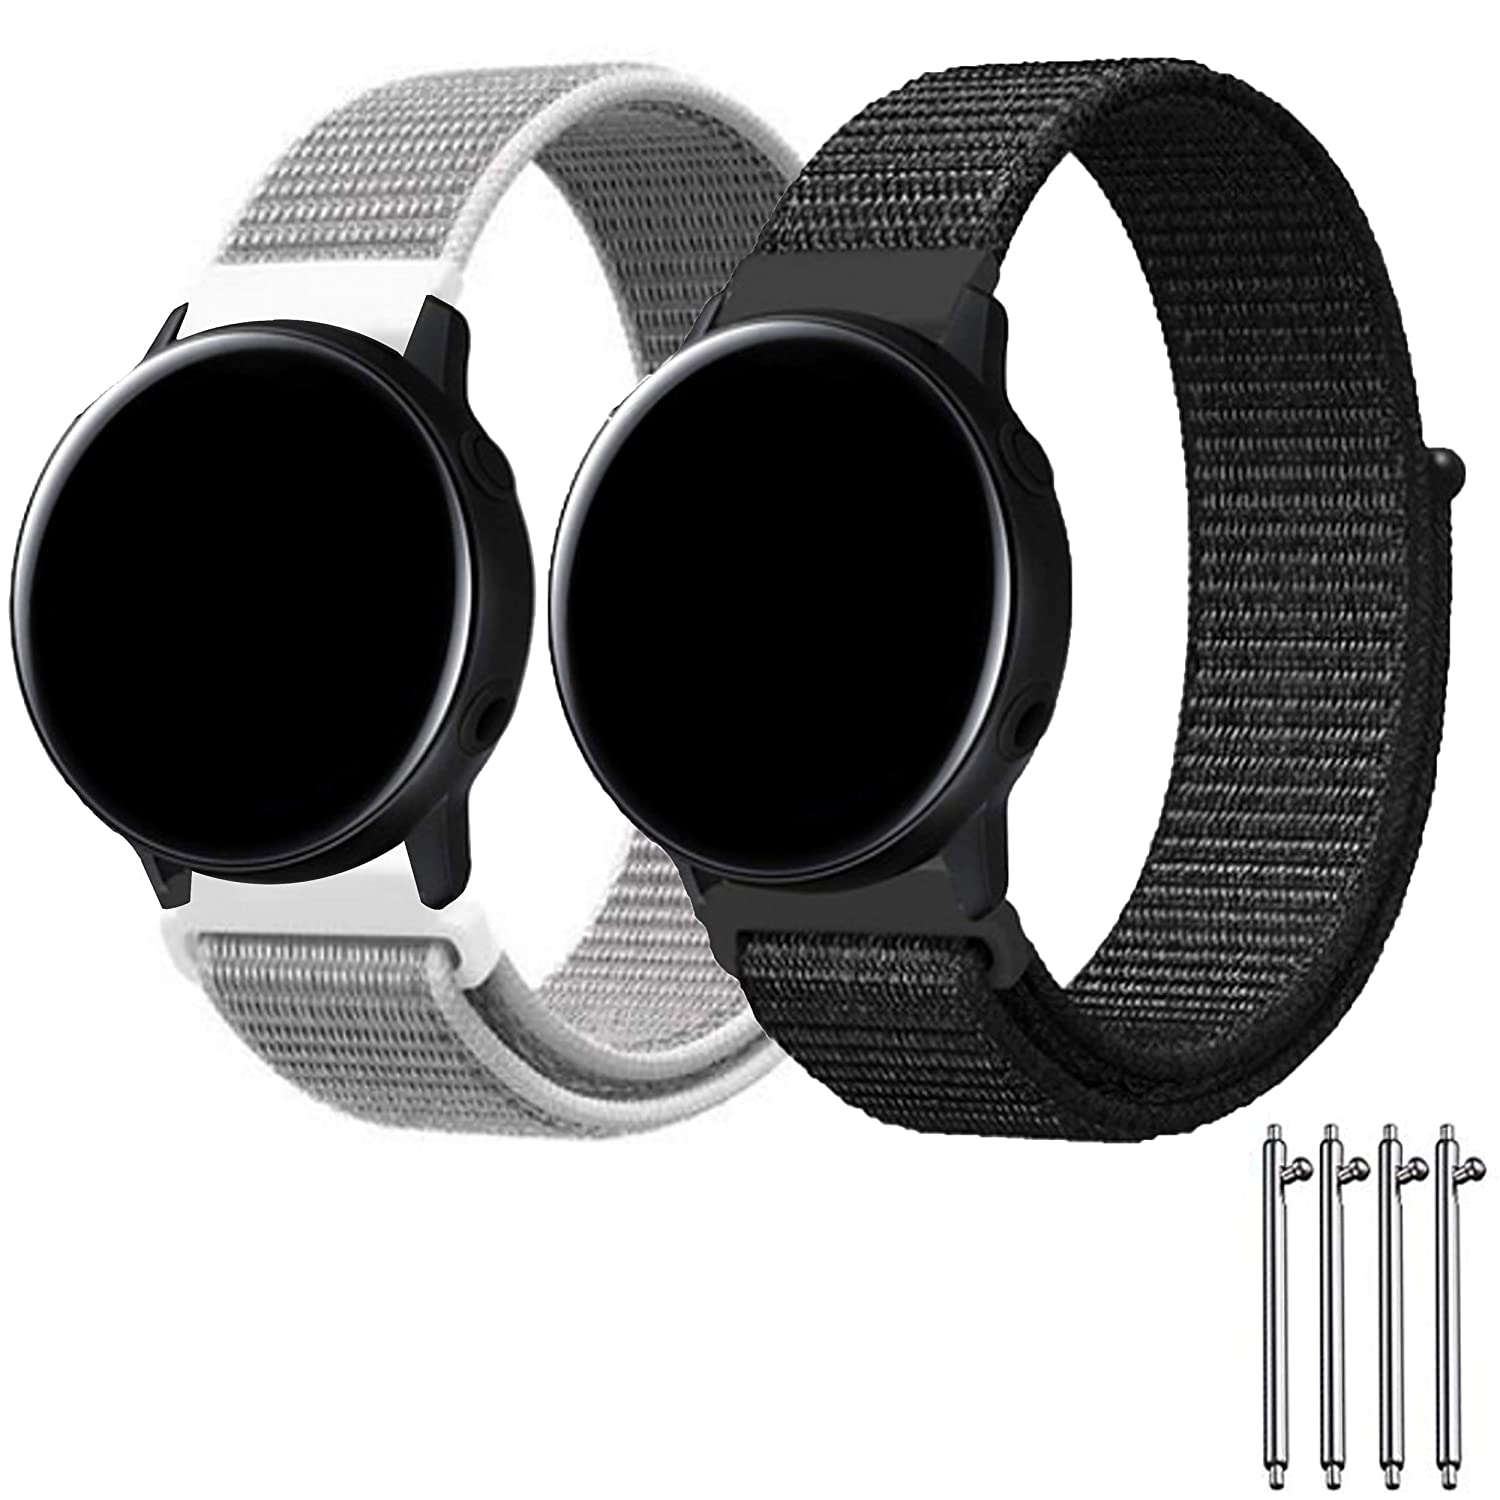 Lexyplus Sport Loop Band Velcro Compatible with Samsung Gear S3 Frontier/Asus/LG Smart Watch/Huawei Samsung Watch 46mm, 22mm Quick Release Nylon ...